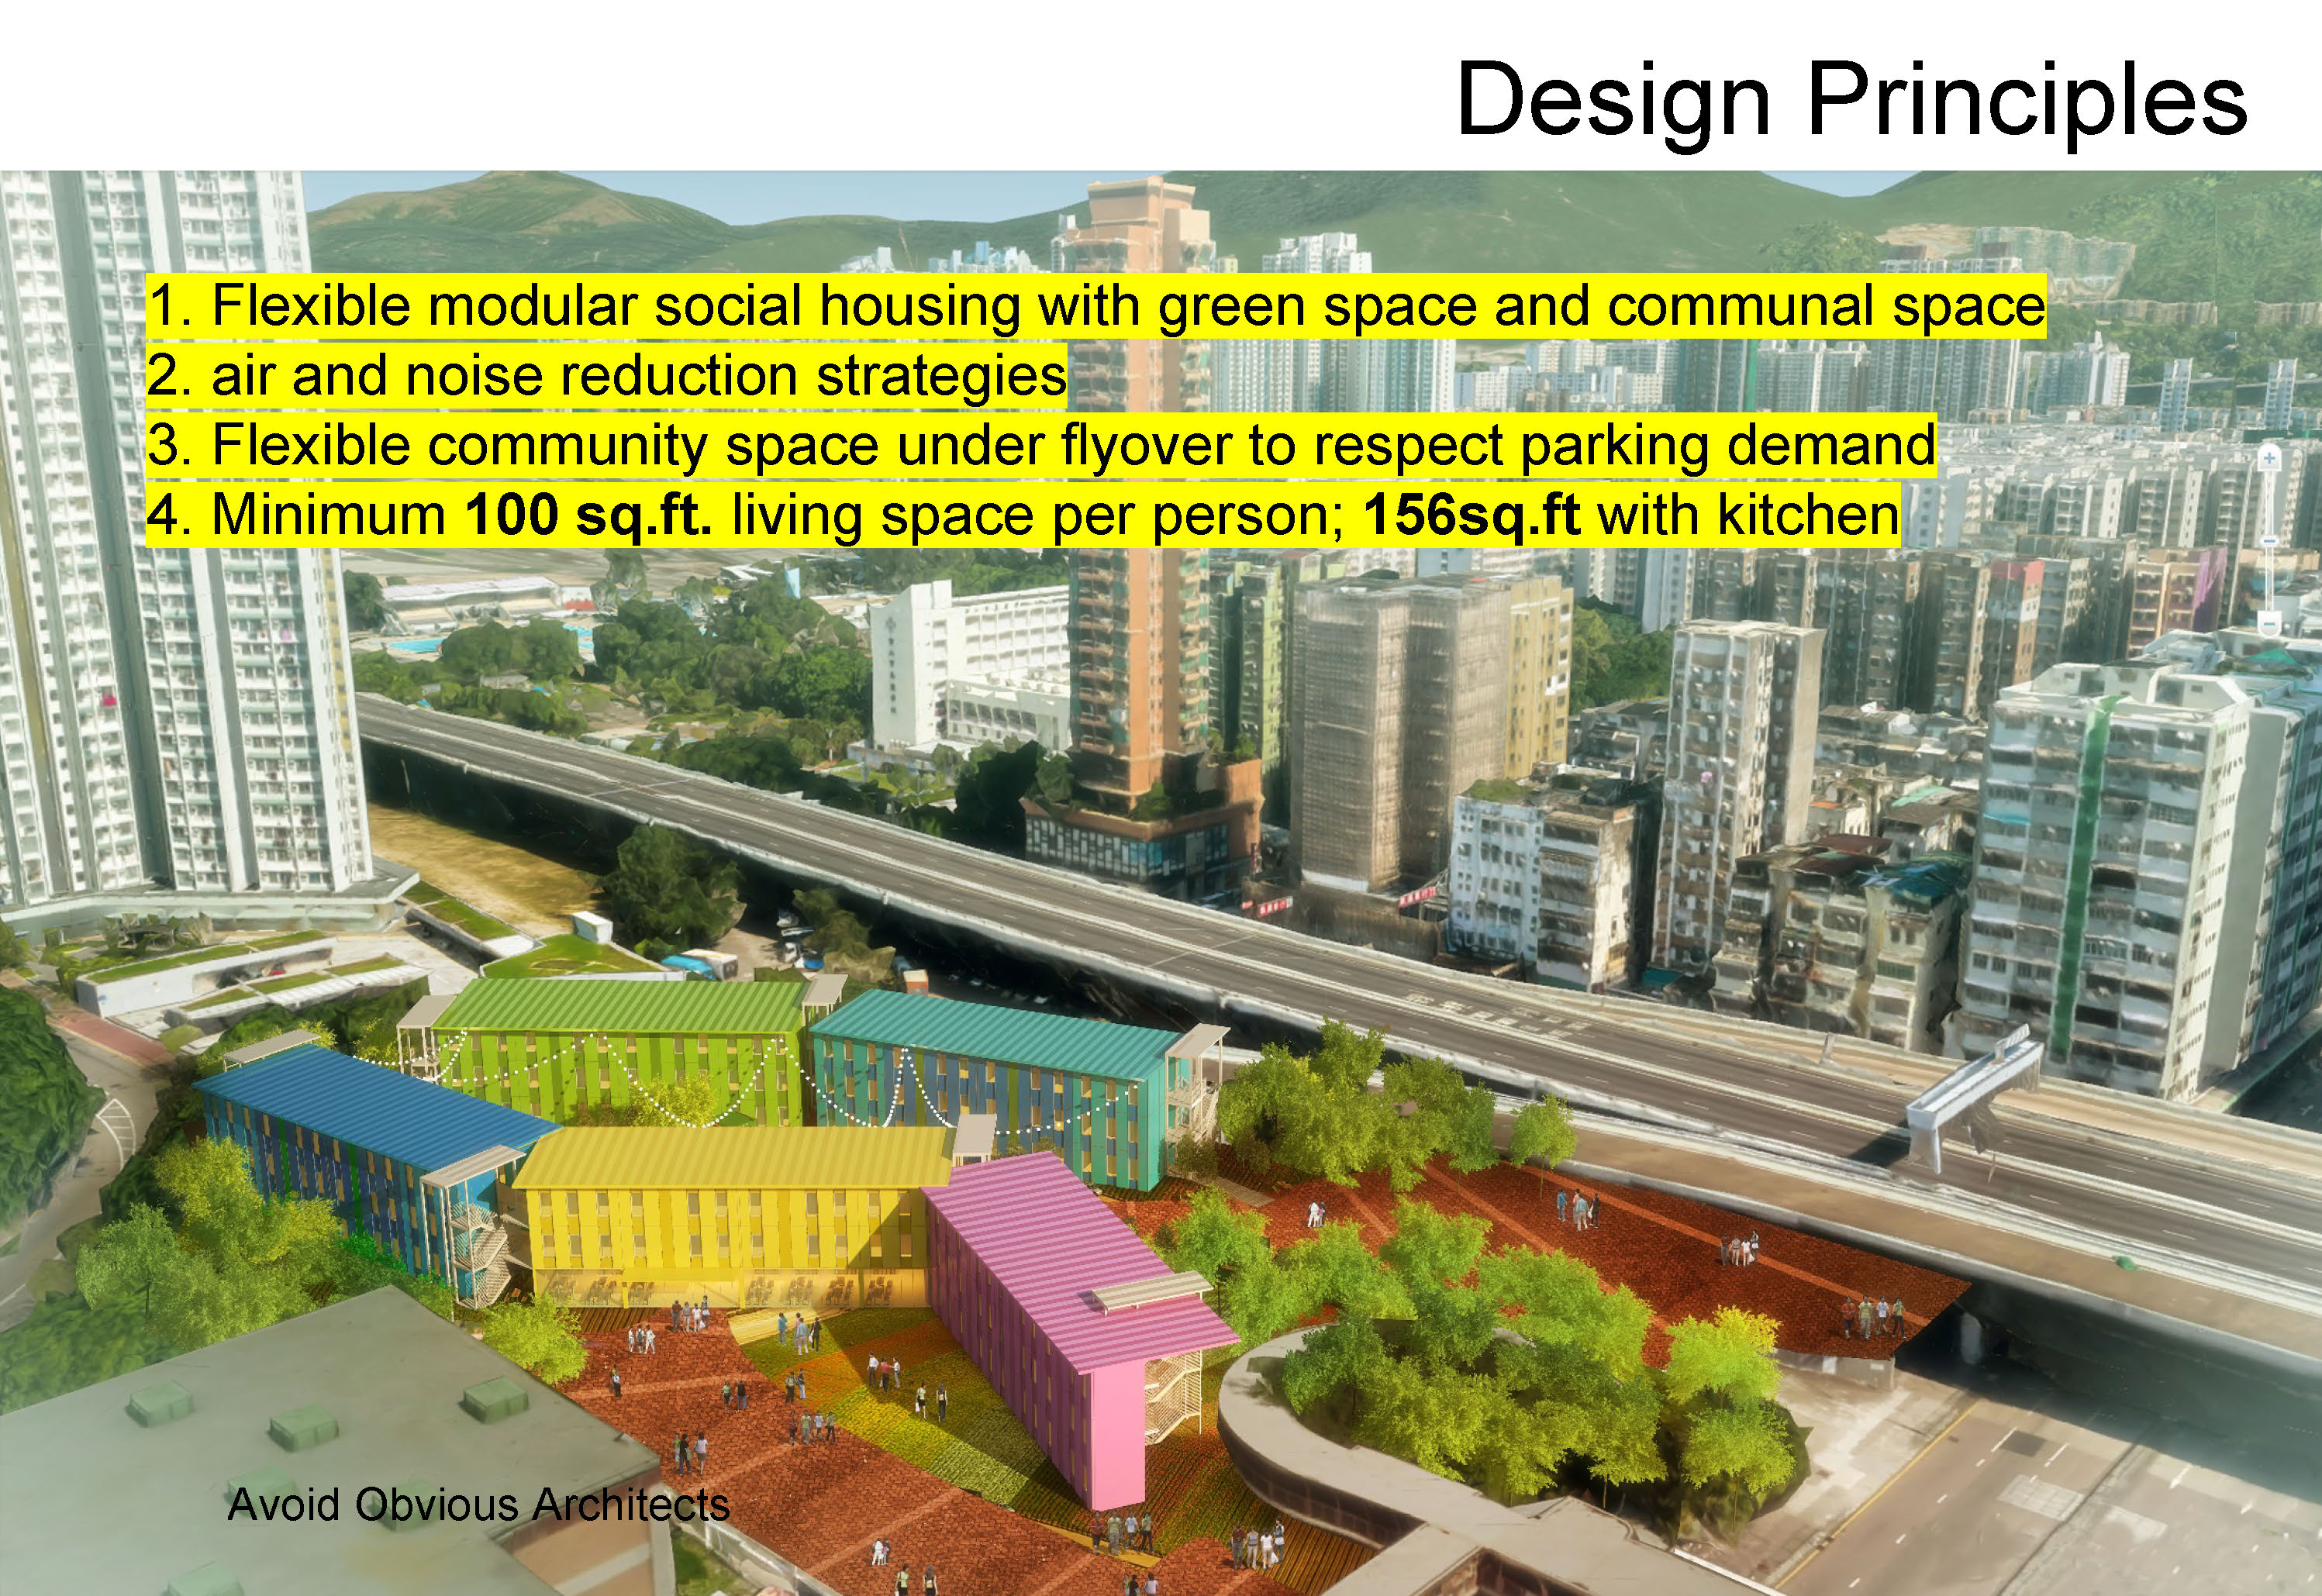 Homeless, coliving, sustainable, design, architects, AOA, vicky chan, Avoid Obvious, hong kong, modular, construction, movable, low budget, cheap, fast, easy, housing, afforable, better, living, crisis, solution, urban planning